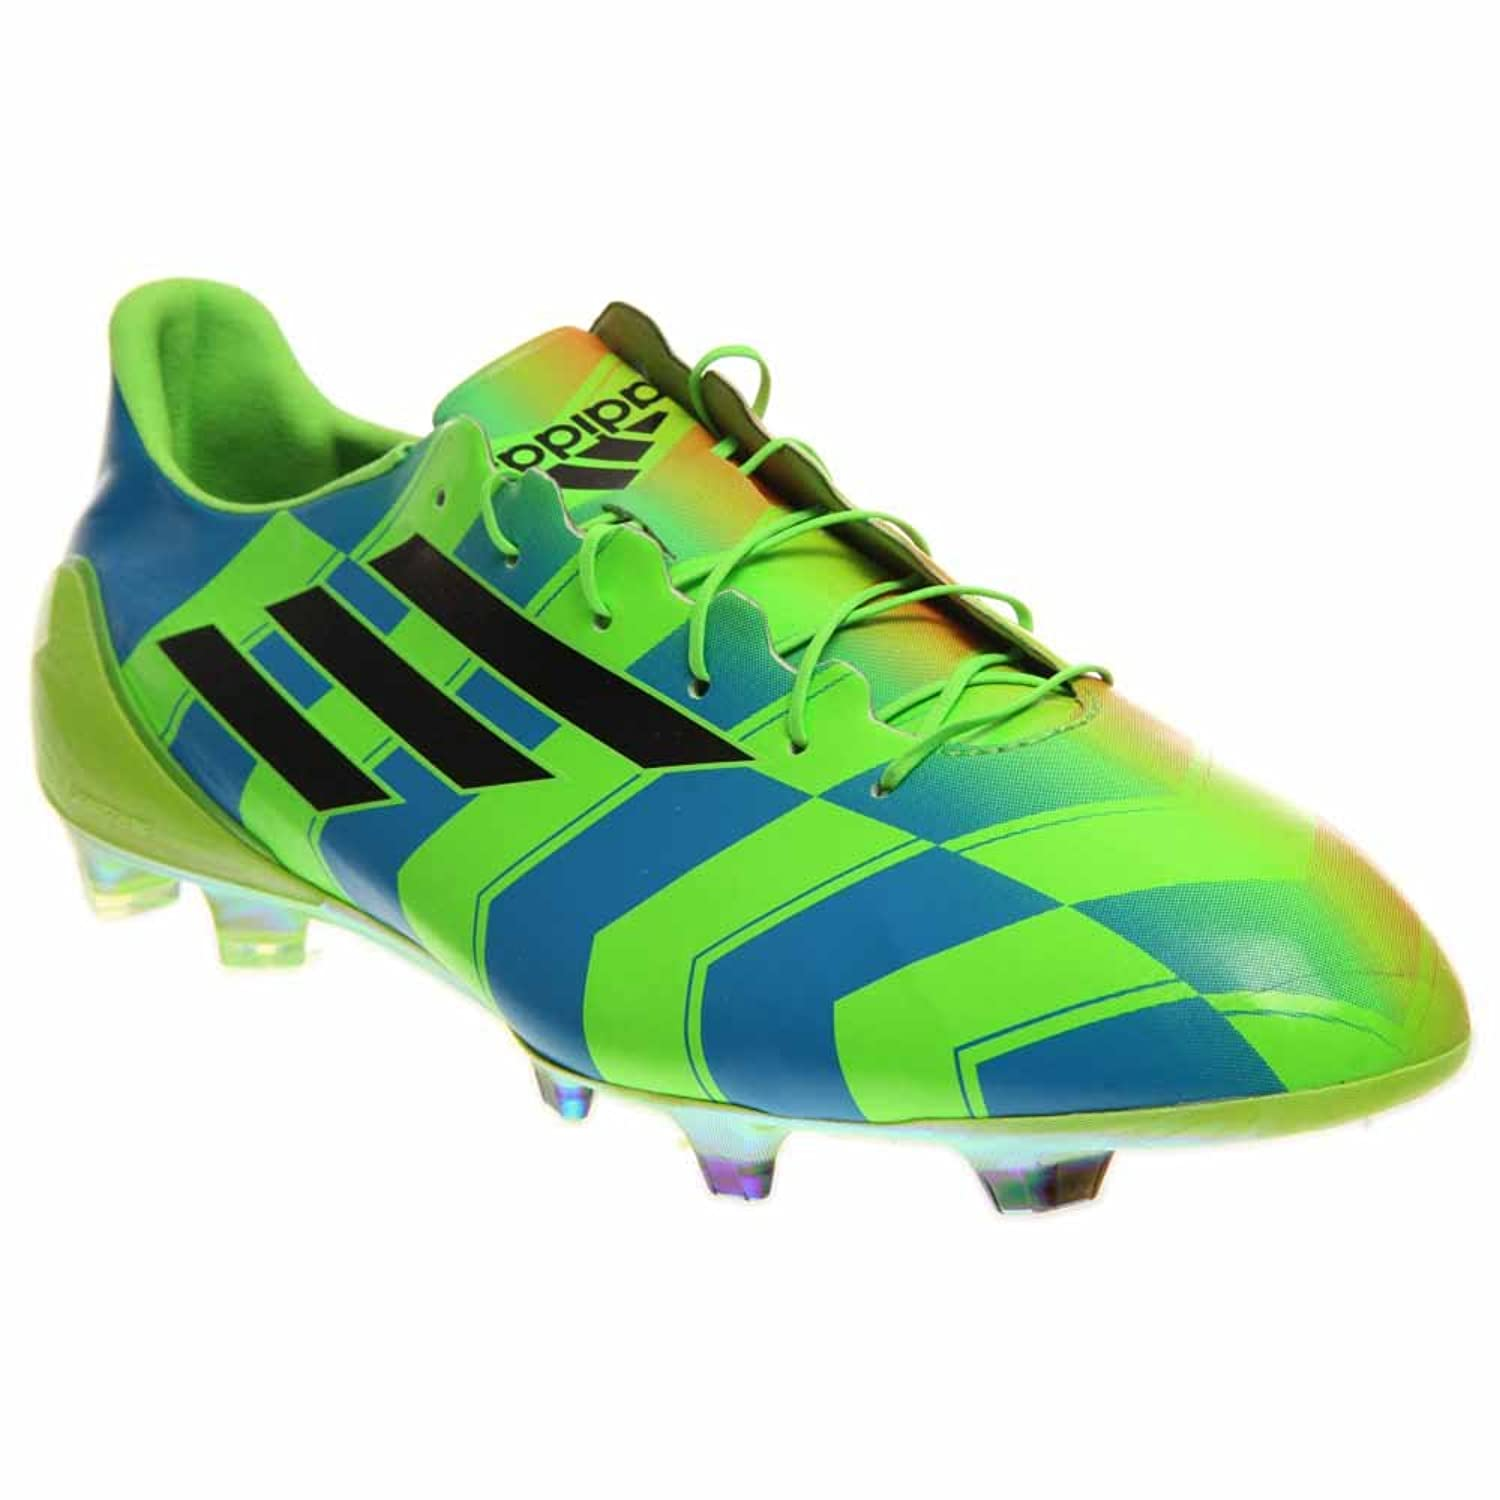 Adidas Chaussures De Football Crazylight nYEakGL